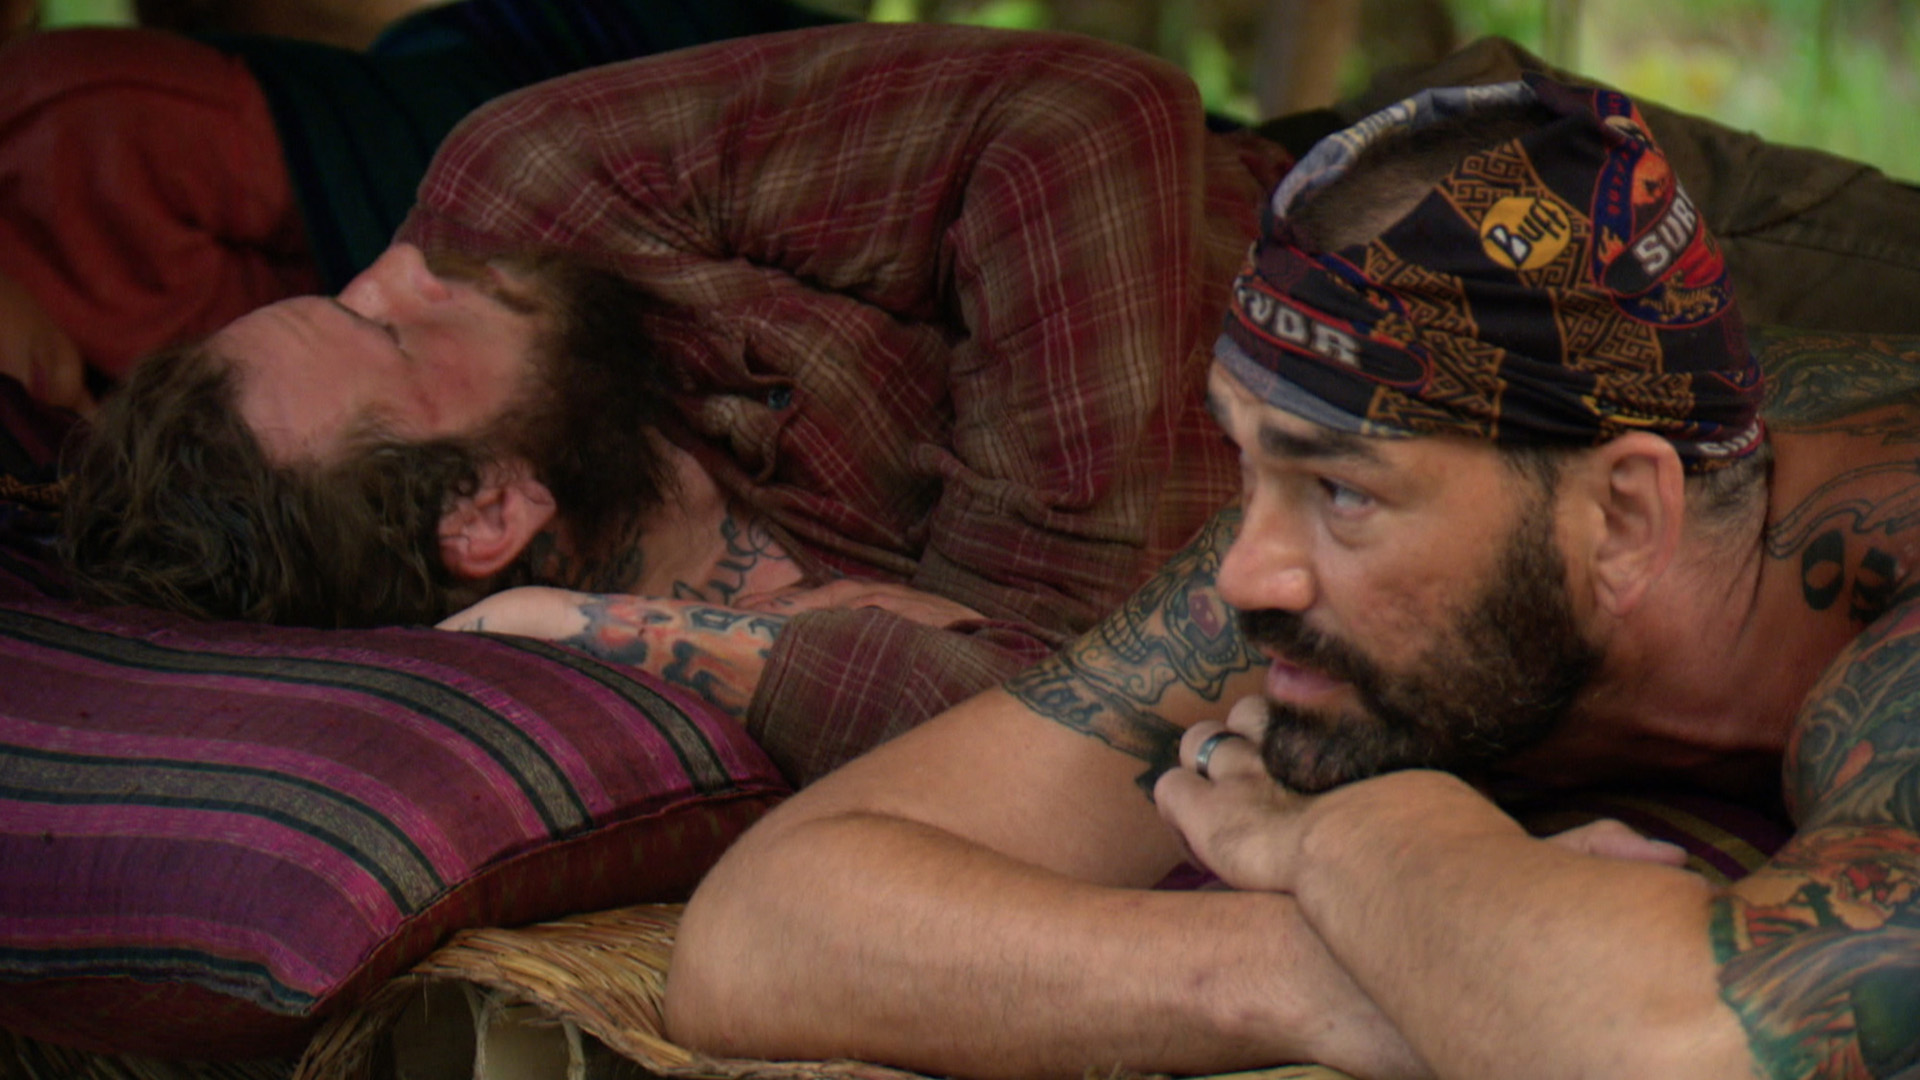 3. What did you think of Scot and Jason's game play, particularly this past week?